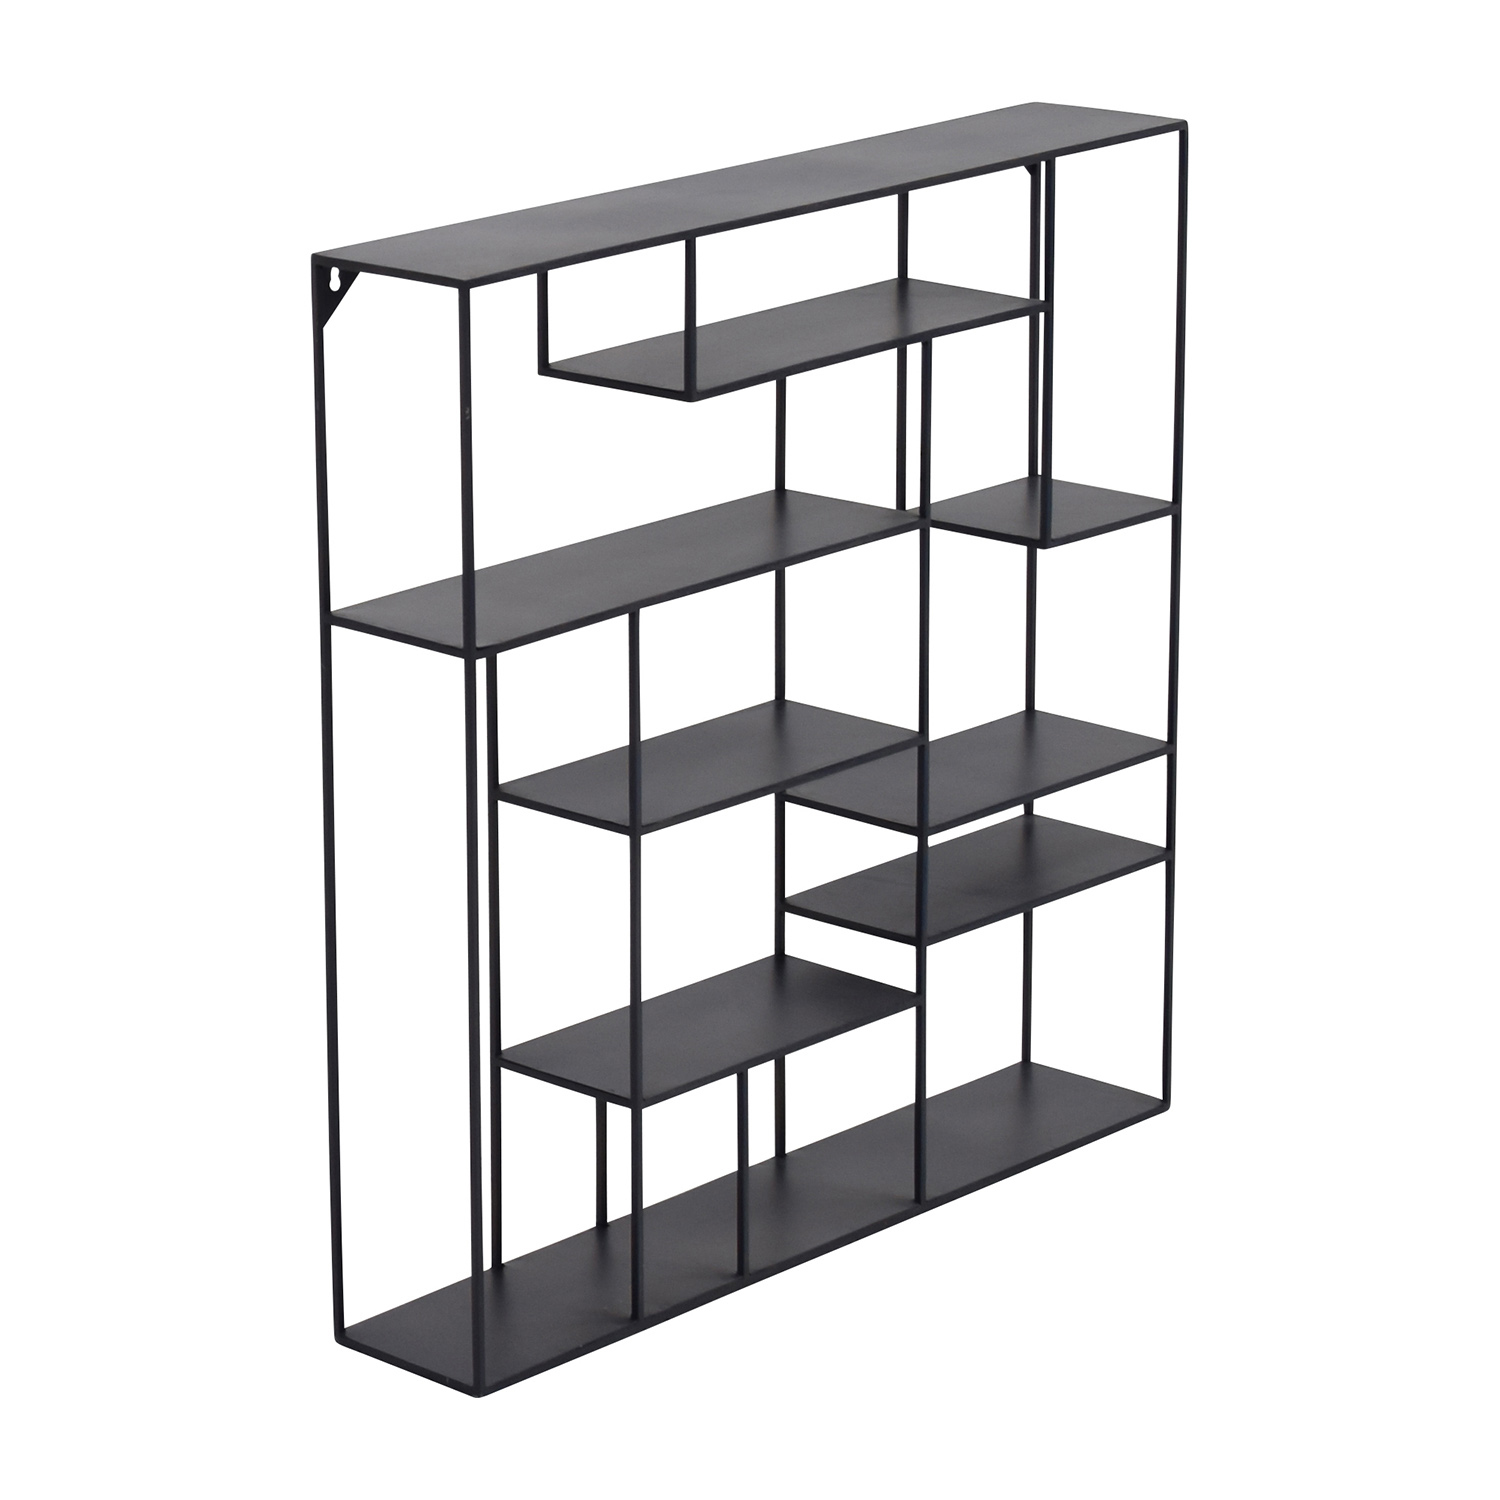 57 off cb2 cb2 alcove black metal wall shelf storage - Wall metal shelf ...